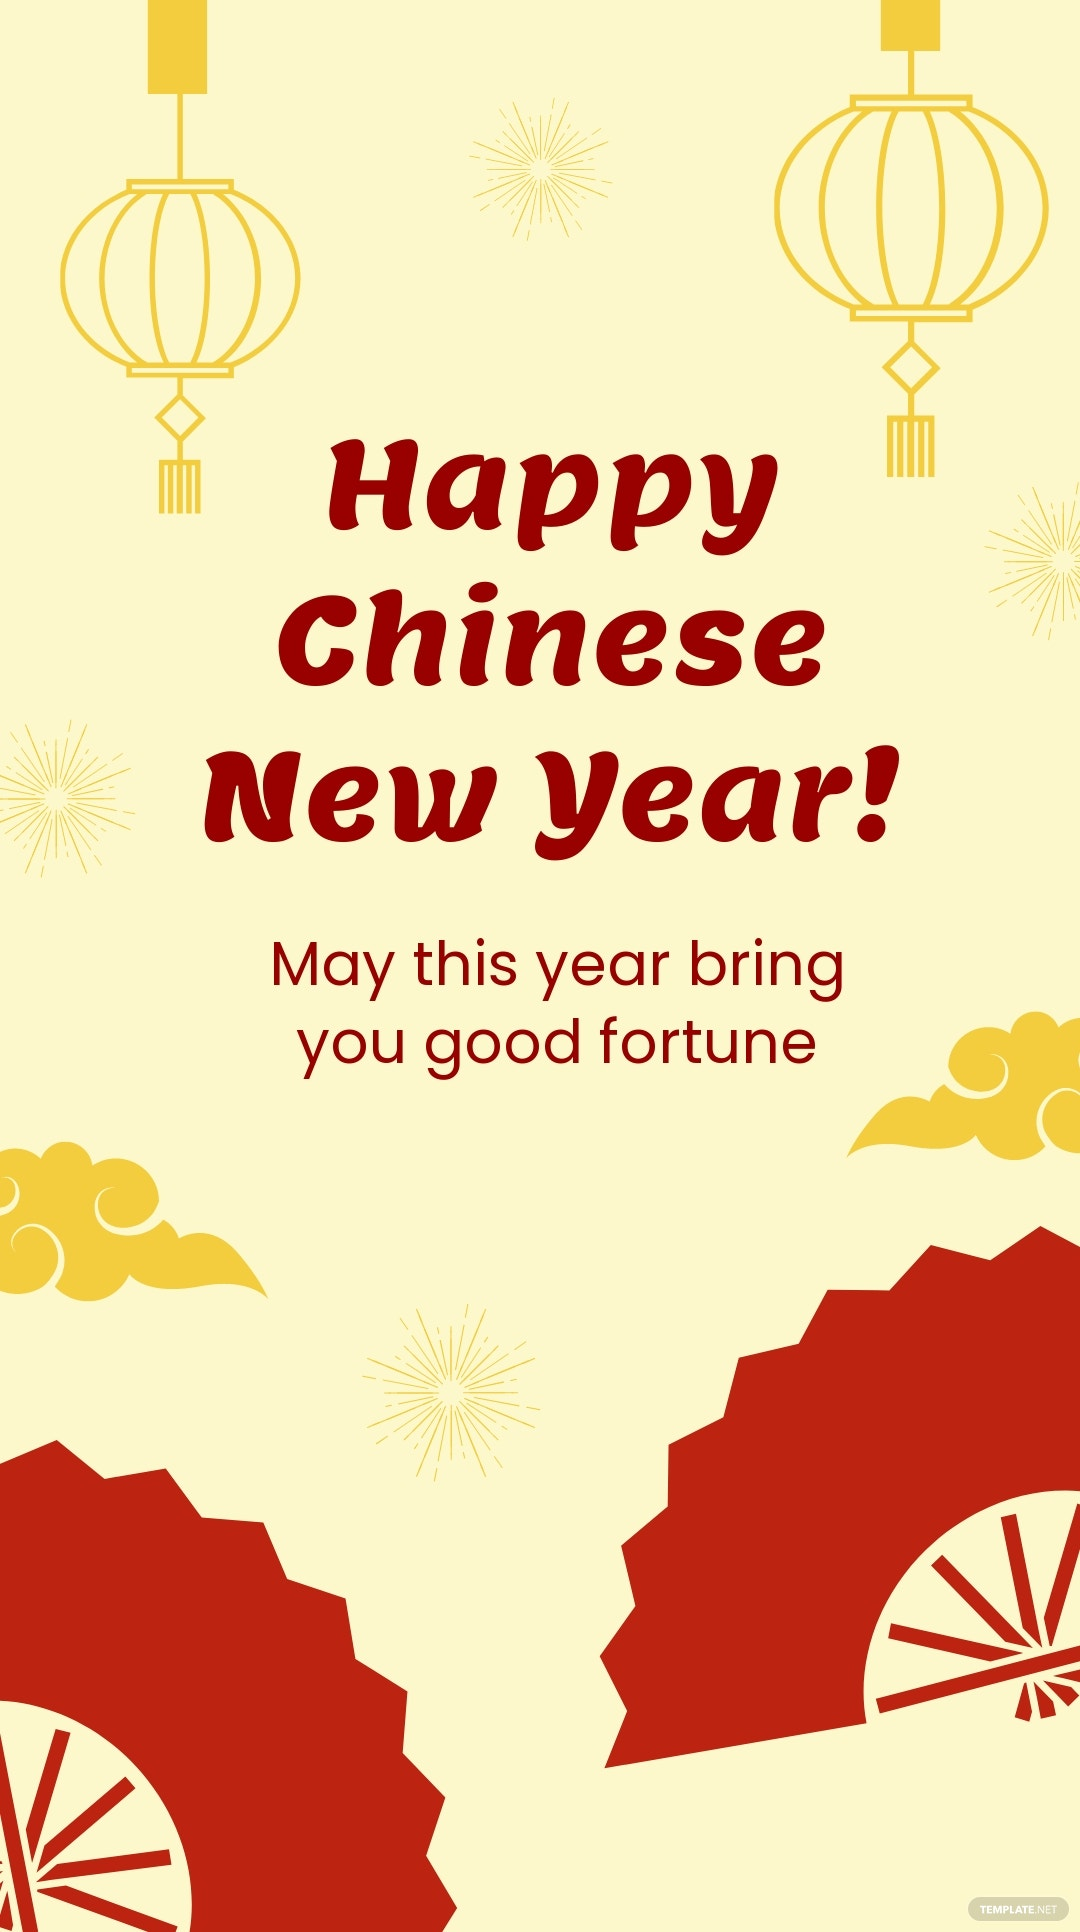 Chinese New Year Greeting Instagram Story Template 4.jpe